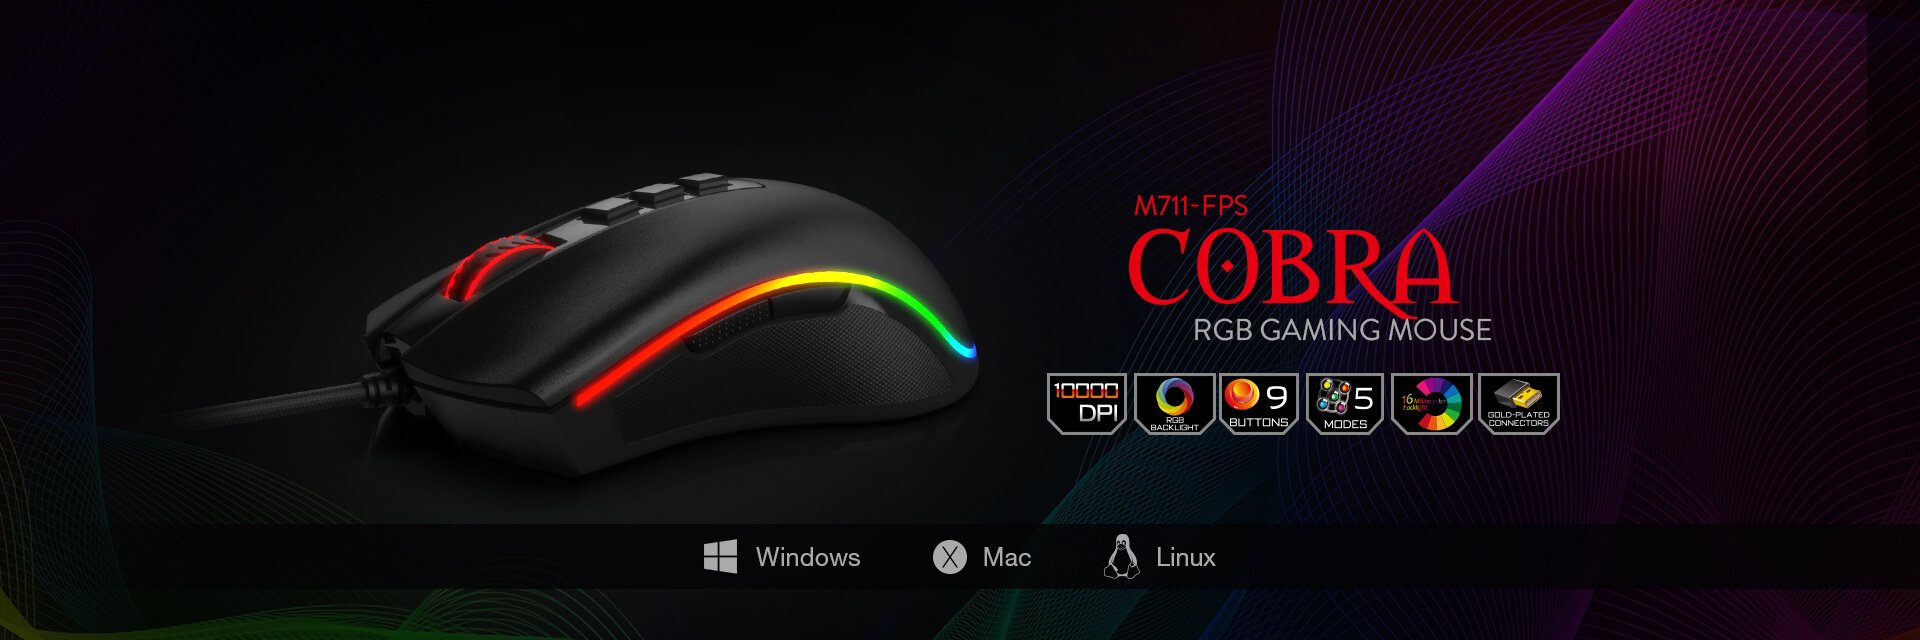 redragon cobra m711-fps